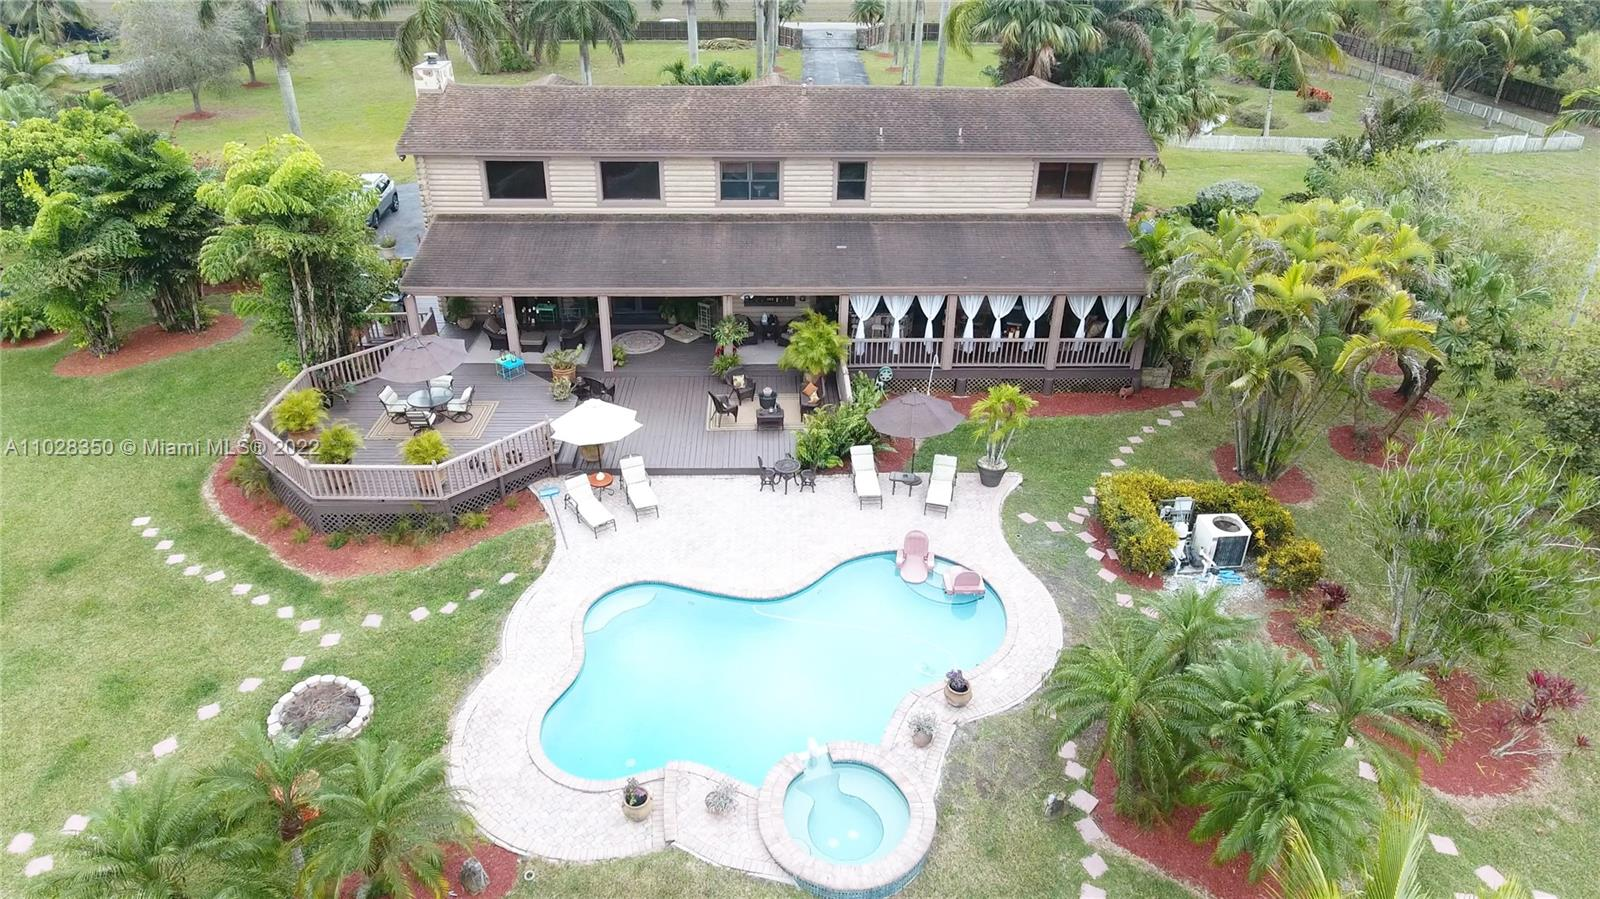 5 ACRES OF HEAVEN IN  MIAMI . THIS CUSTOM LOG CABIN IS THE REAL DEAL. RIGHT OUT OF TOWN AND COUNTRY...SHE HAS AN AMAZING POND UP FRONT, 2 MASTER SUITES, A LOFT THAT CAN EASILY BE EQUIPPED WITH BARN DOORS TO MAKE THE 3RD BEDROOM.A FAMILY ROOM WITH 20 FT VOLUME CEILINGS WITH A WOOD BURNING RIVER ROCK FIREPLACE WHICH OPENS TO OVERSIZED MULTI LEVEL PATIO WITH POOL, SPA  AND BAR .A SECTION OF THE PATIO HAS EXTERIOR CURTAINS  WHICH ALLOW FOR A NAP IN THE HANGING SWING BED.. FEATURES THE 2 MASTER SUITES 1 UP AND 1 DOWN, 2 CAR GARAGE, PORTE COCHERE AND WHAT A CHEF'S CUSTOM KITCHEN!! THERES A BREAKFAST NOOK, FORMAL DINING .THIS HOME SPEAKS FOR ITSELF. THIS IS  A COUNTRY HOME LOCATED IN PRIME REDLAND. IT COULD BE AN AMAZING EVENT VENUE.